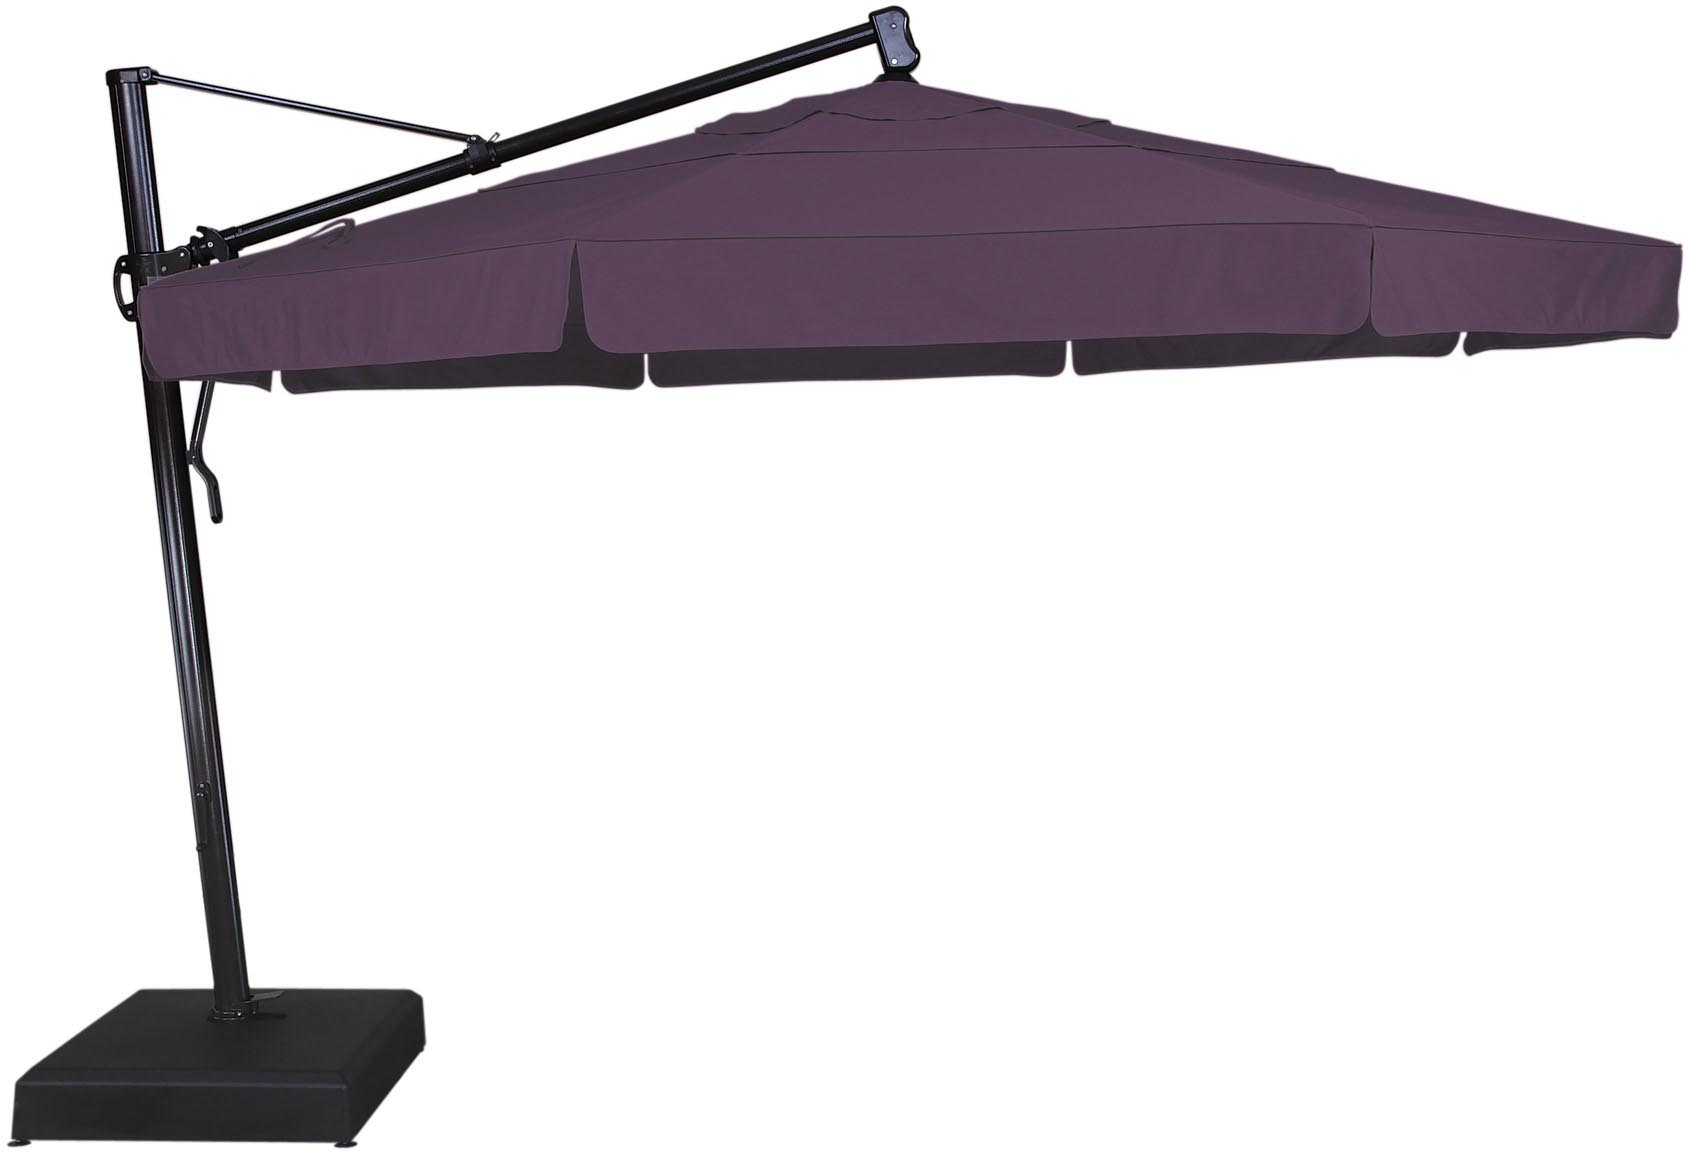 inspiring cantilever patio umbrella in purple with black metal stand for patio furniture ideas